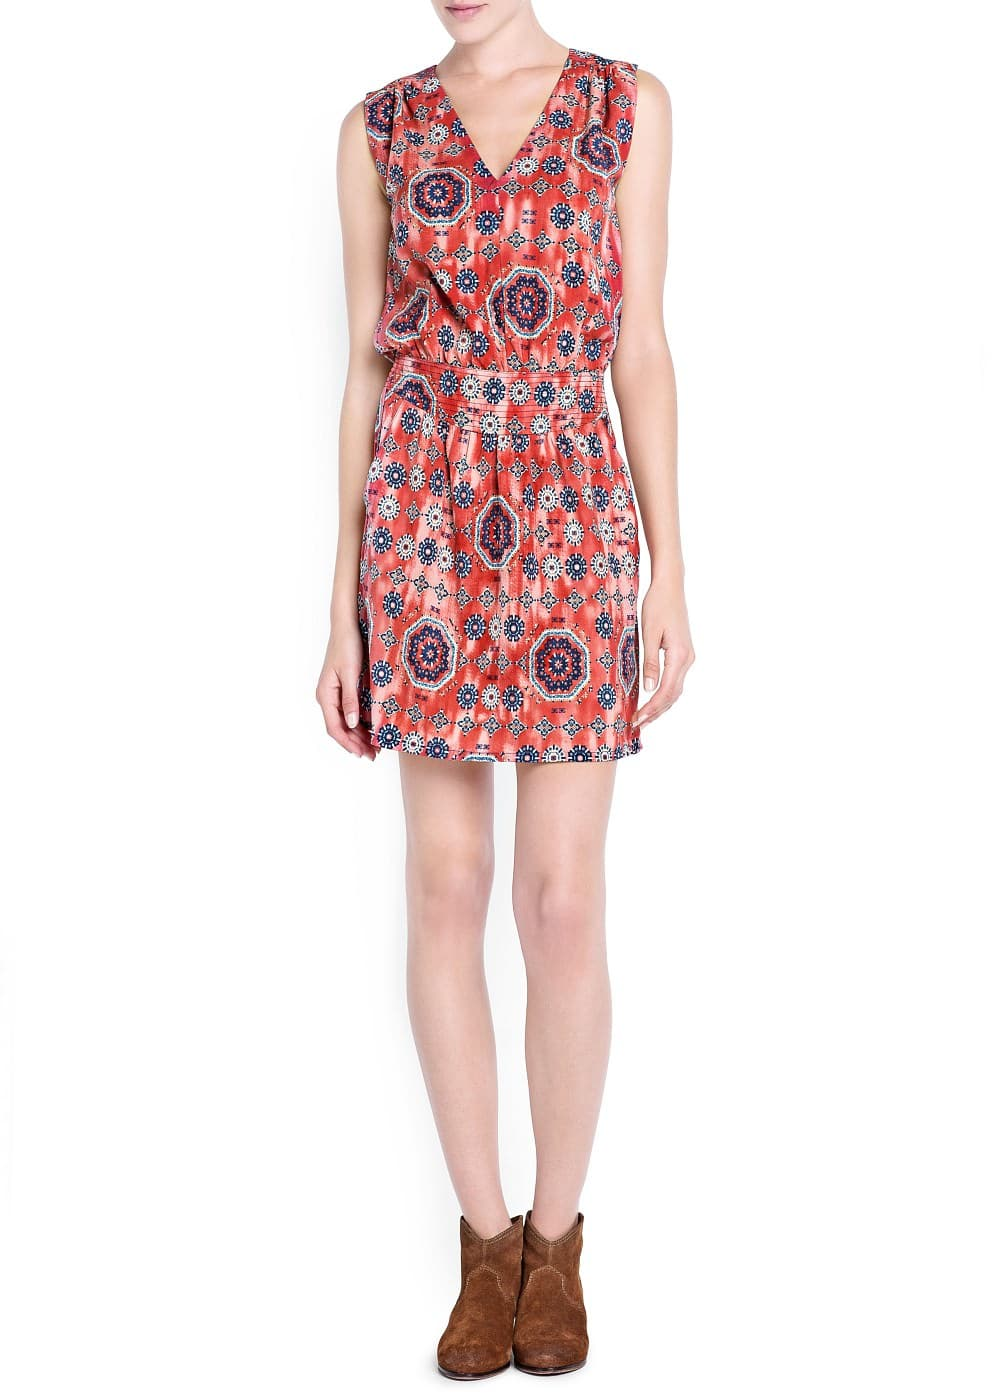 Stitched appliqué printed dress